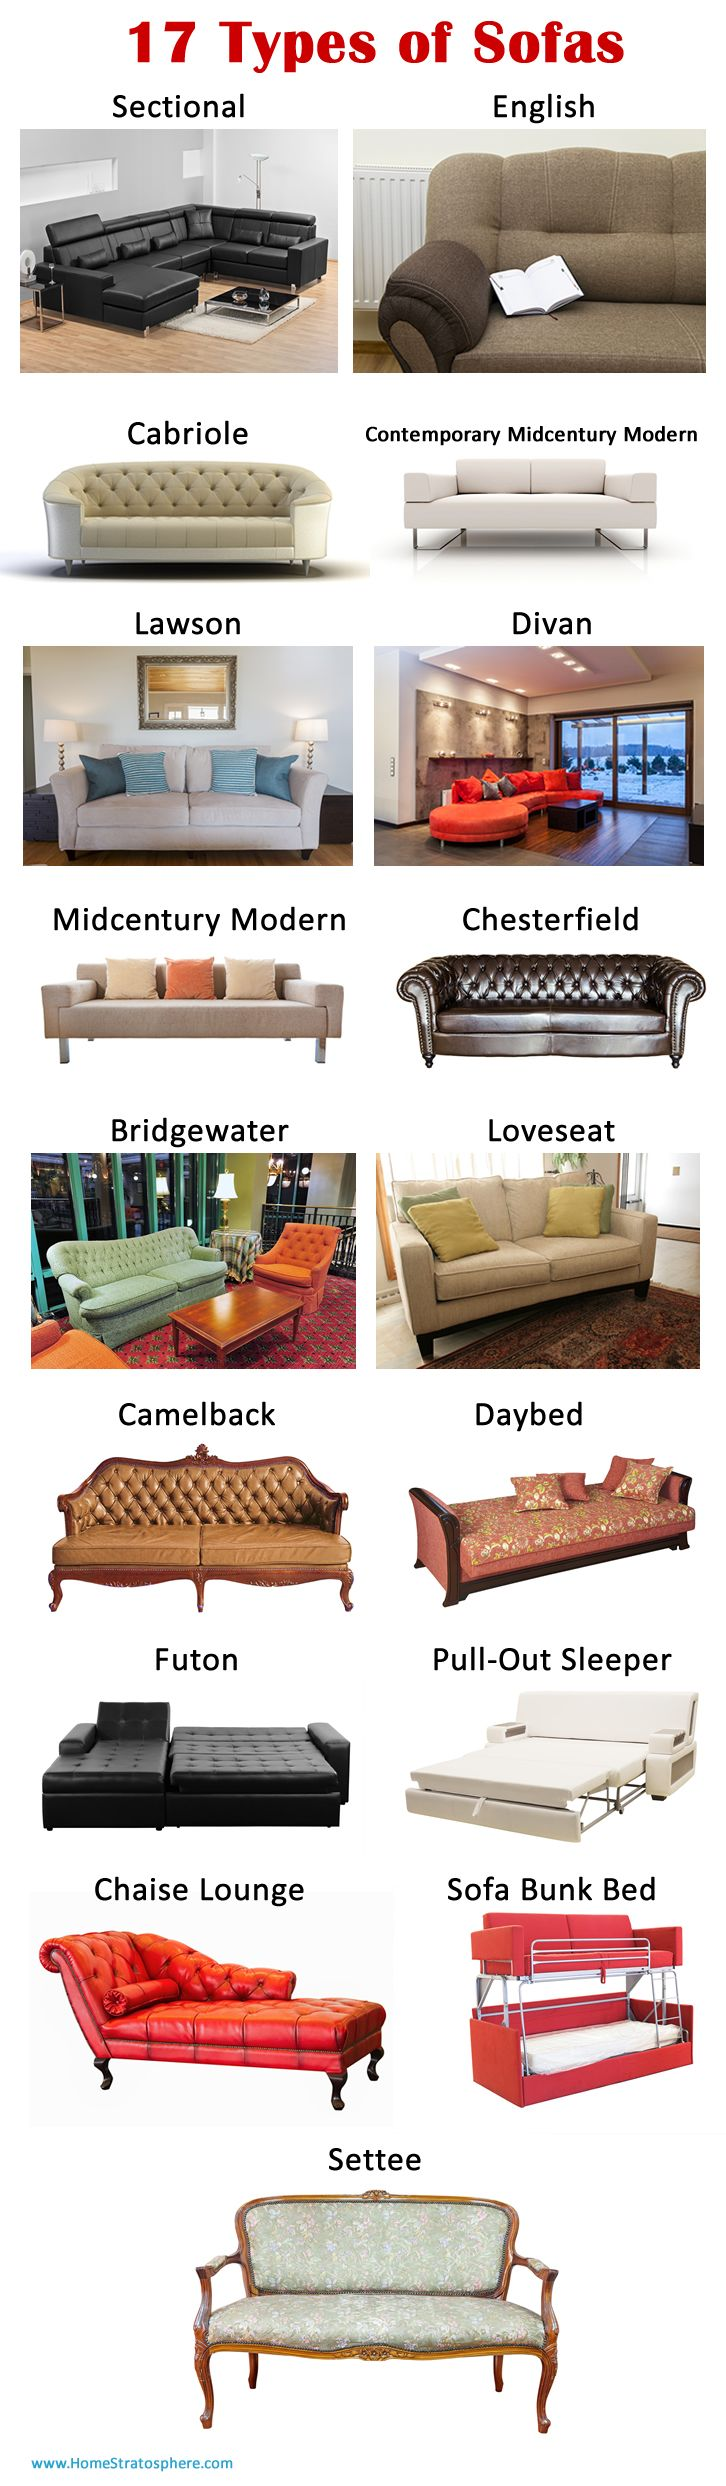 25 Styles Of Sofas Couches Explained With Photos Types Of Sofas Types Of Couches Sofa Design